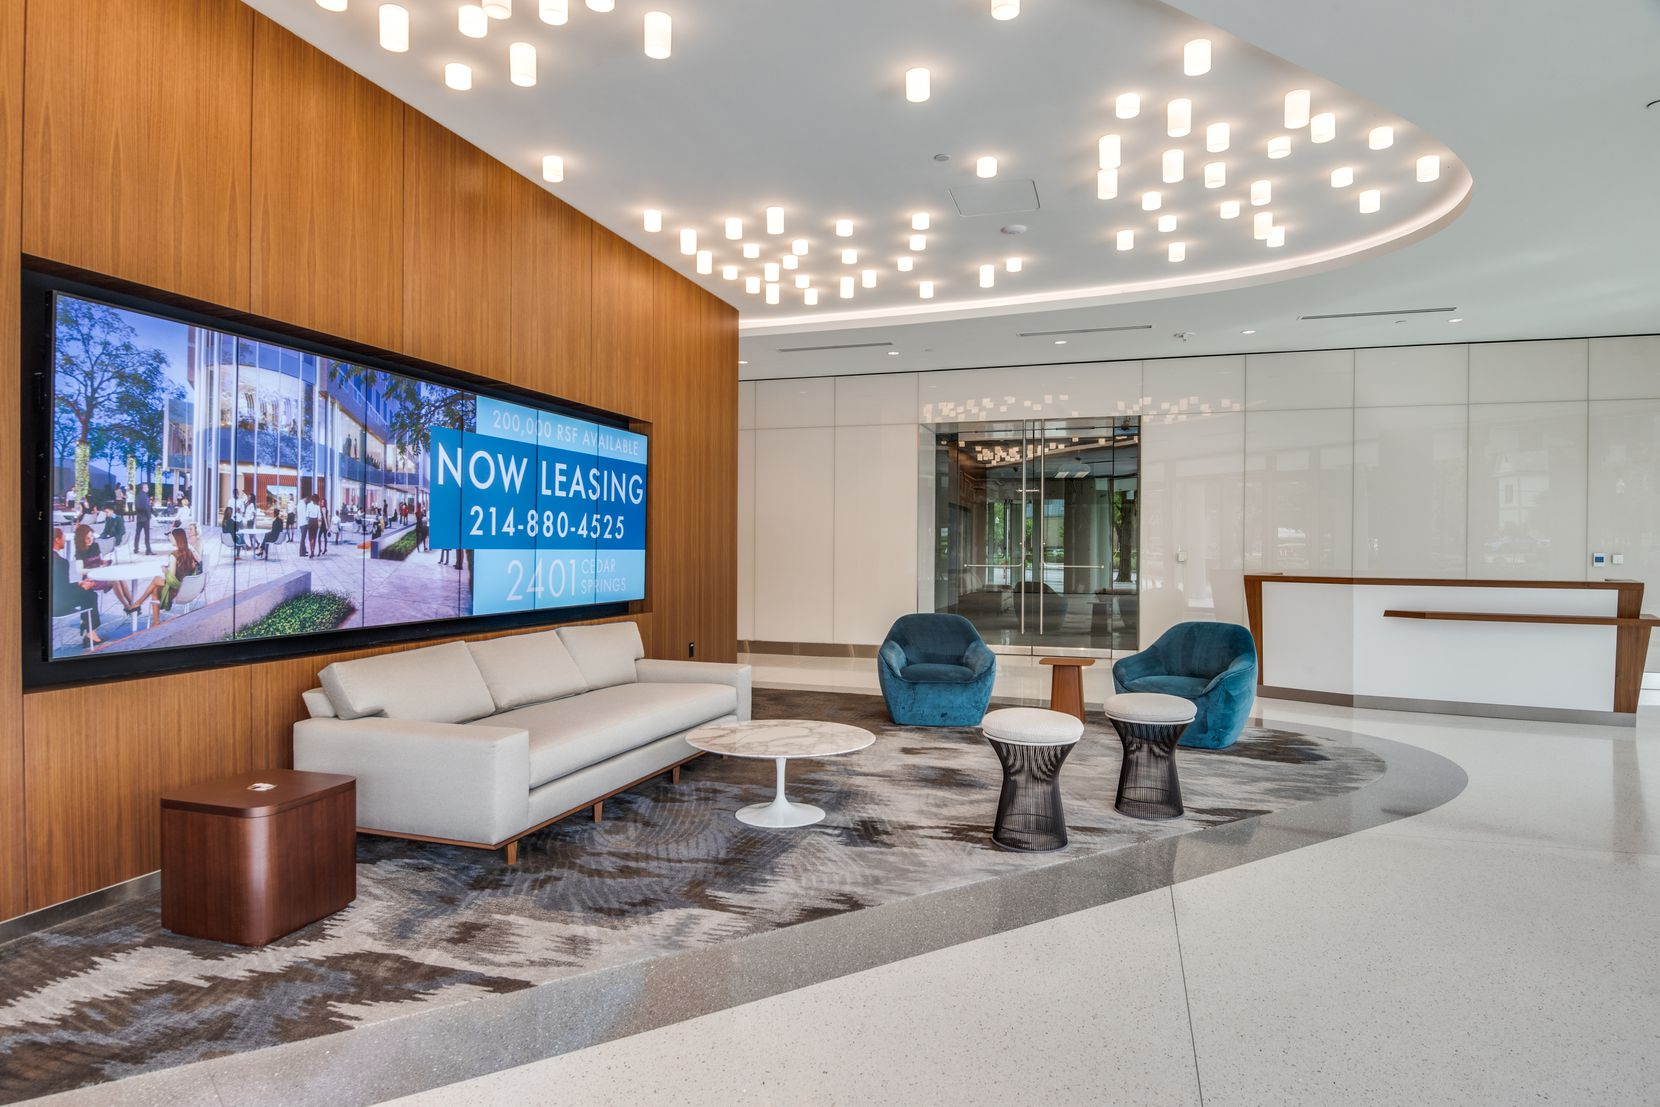 The 2401 Cedar Springs office building in Dallas' Uptown district was renovated by Crescent Real Estate. JLL is taking about half of the building.